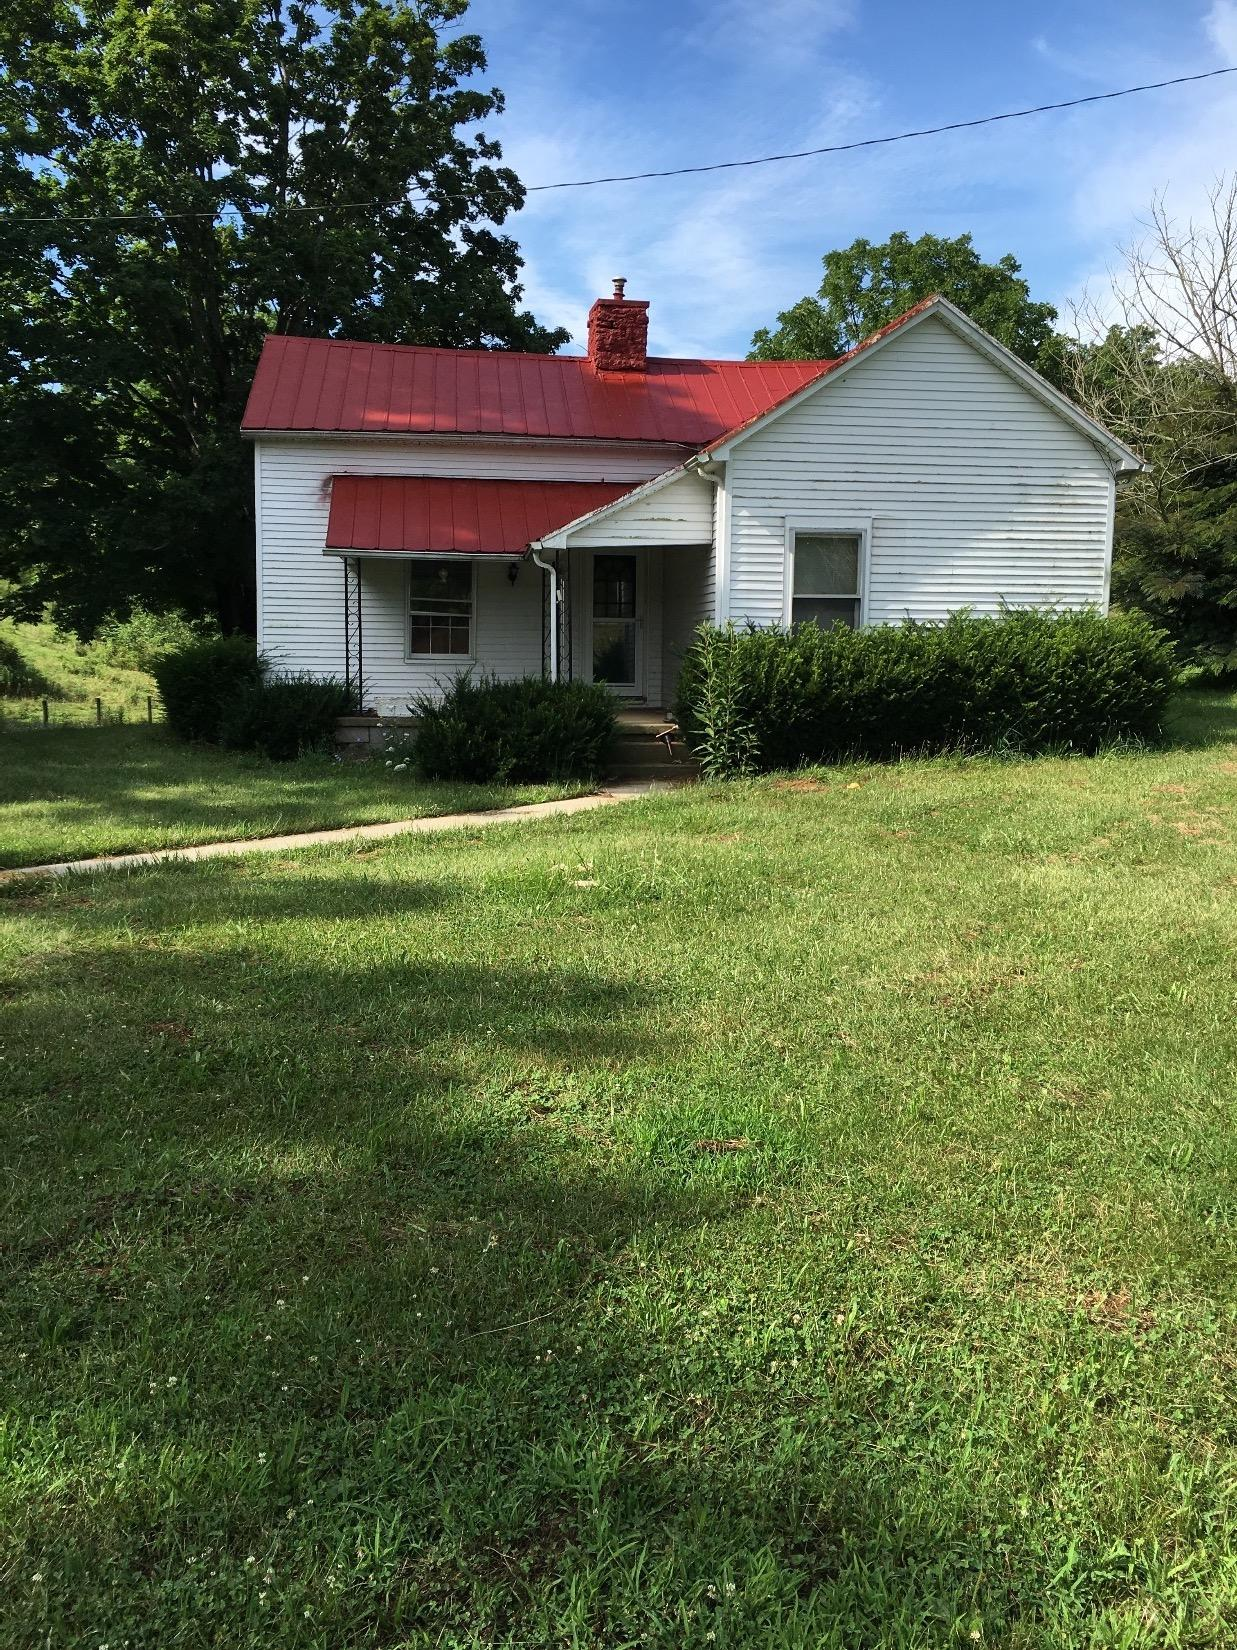 974 Kentucky Highway 3003, Cynthiana, KY 41031